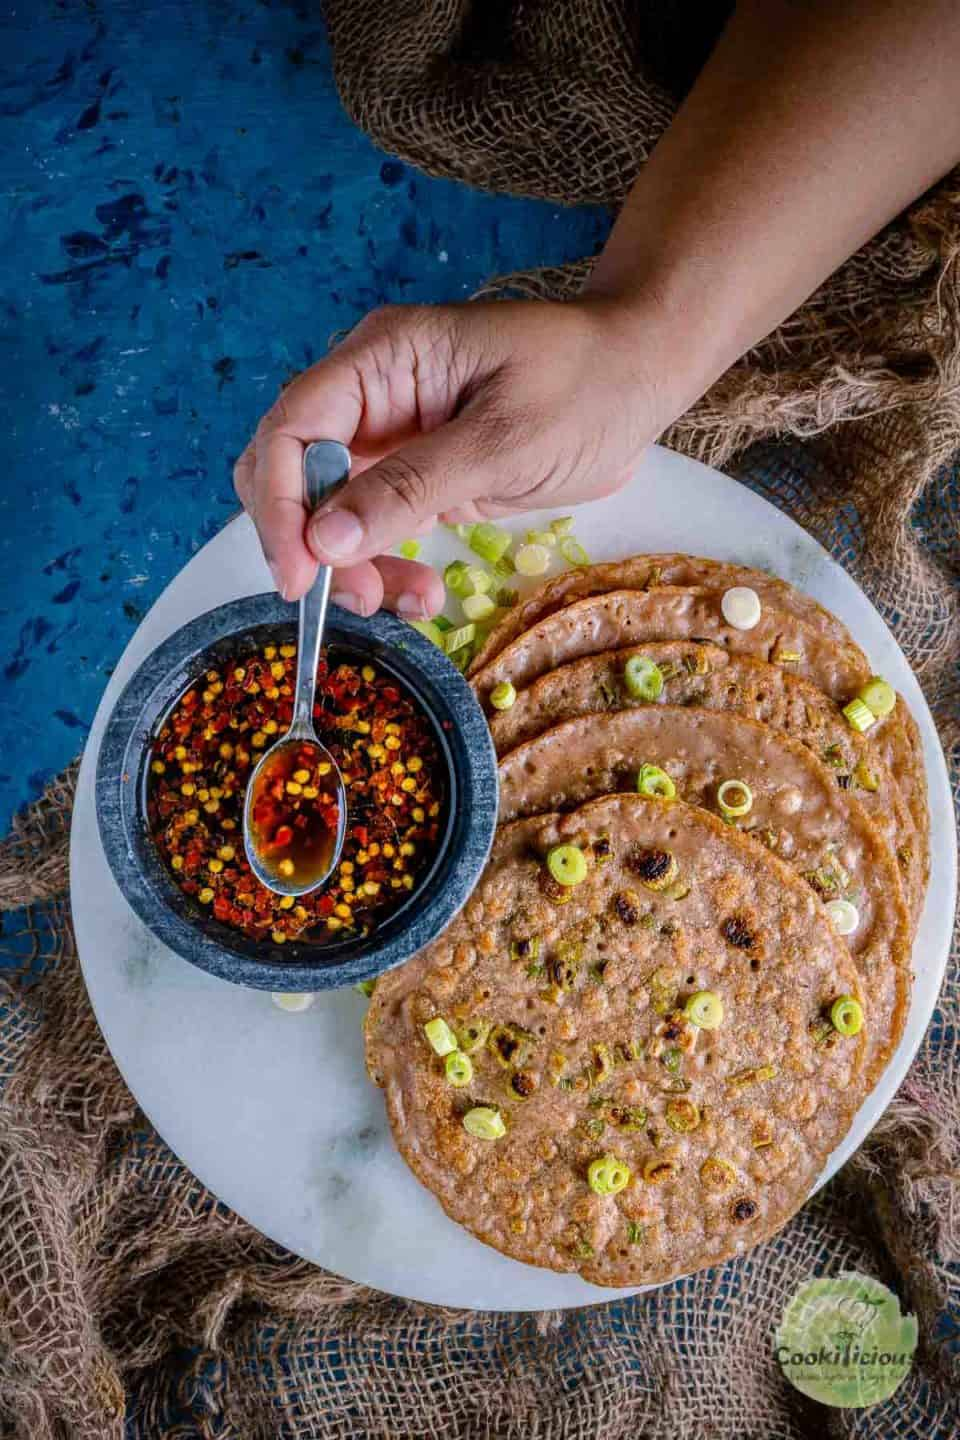 Chinese Scallion Pancakes served in a platter with one hand putting a spoon into the dipping sauce next to it